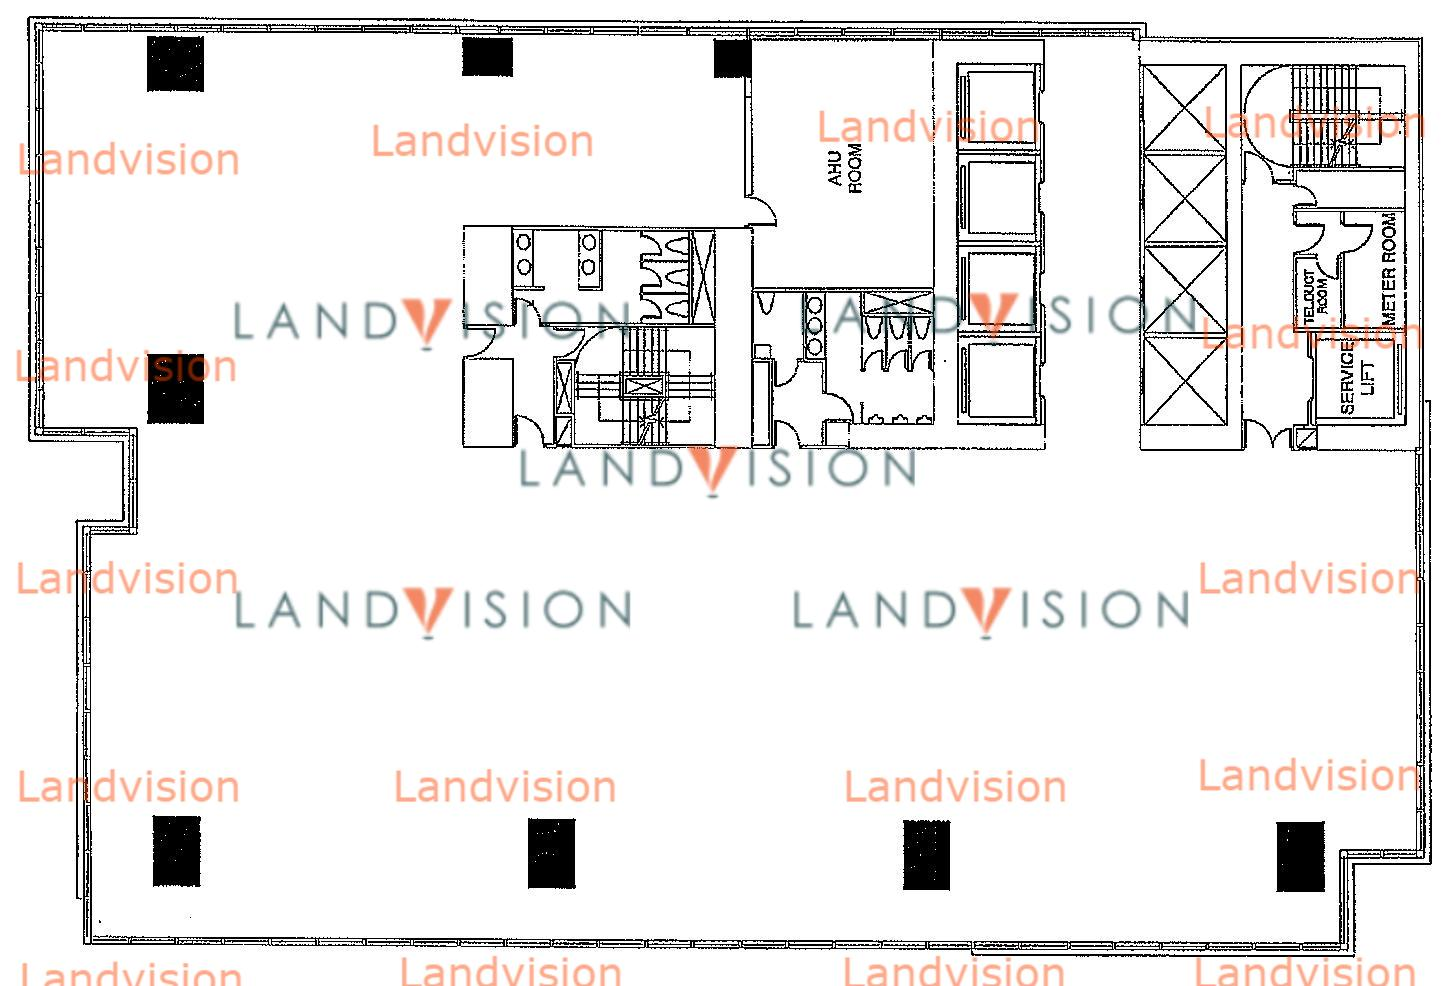 https://www.landvision.com.hk/wp-content/uploads/website/resize/floorplans/000783.JPG